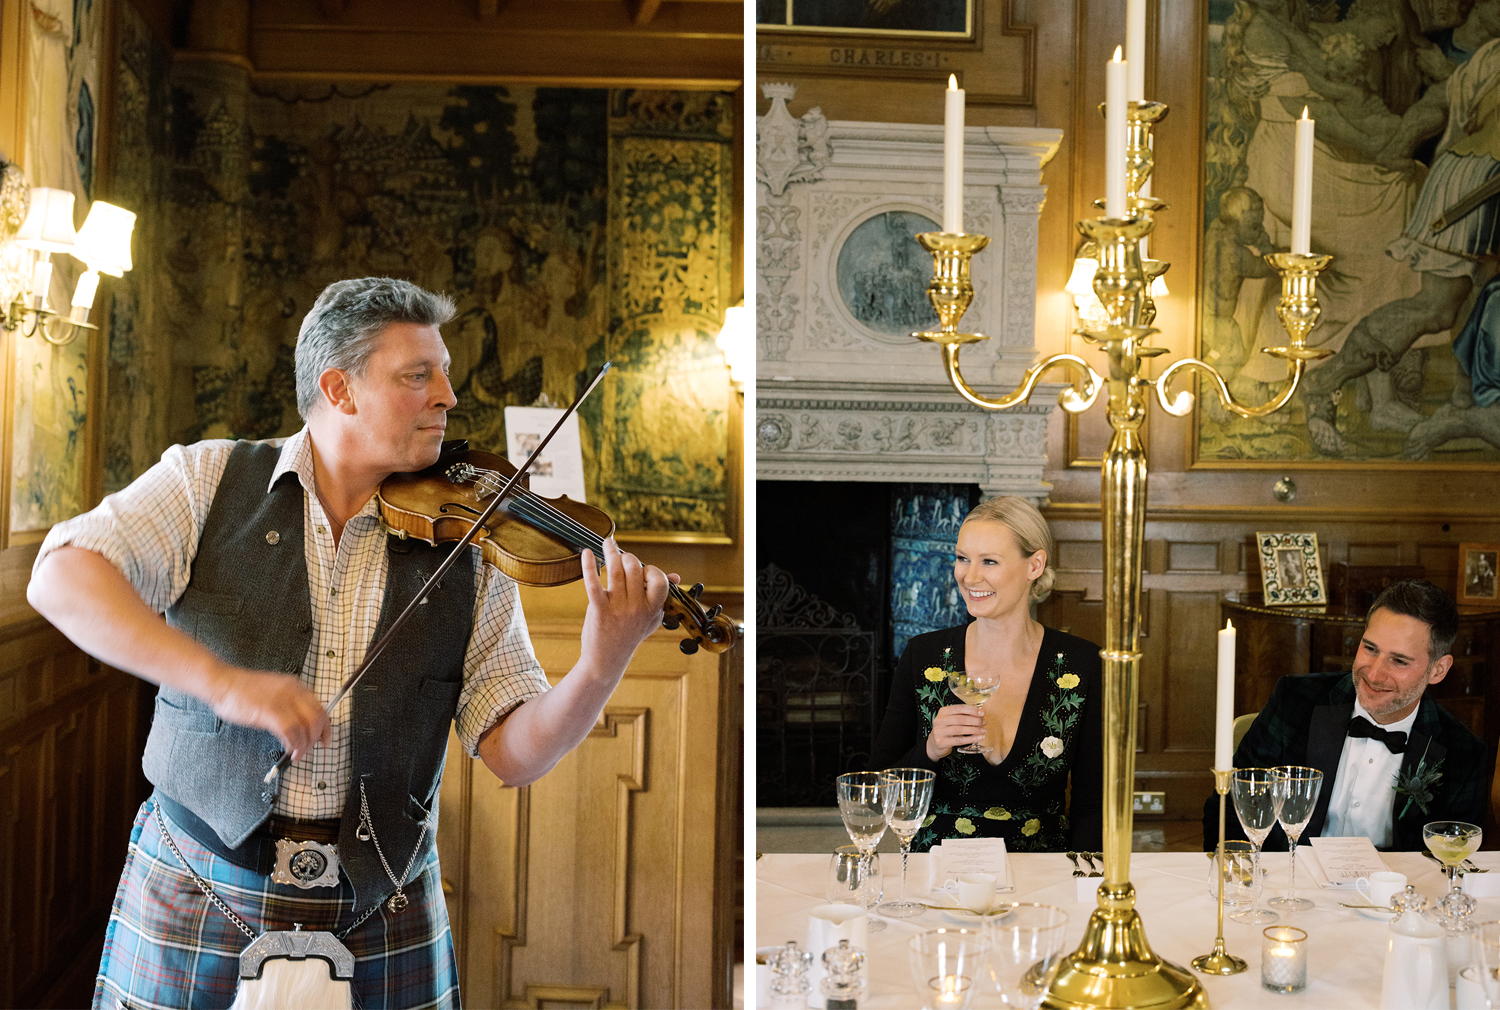 Live music at this black tie surprise party at Fyvie Castle in Scotland.